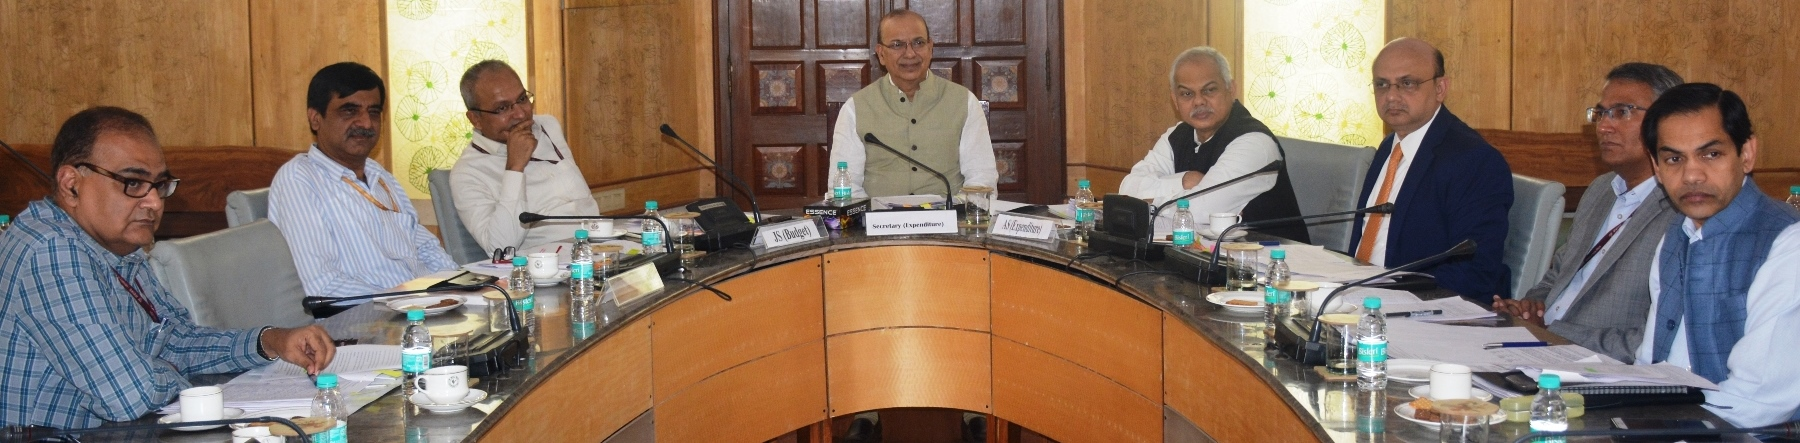 Shri A. N. Jha, Secretary (Expenditure) holding a RE Budget discussion